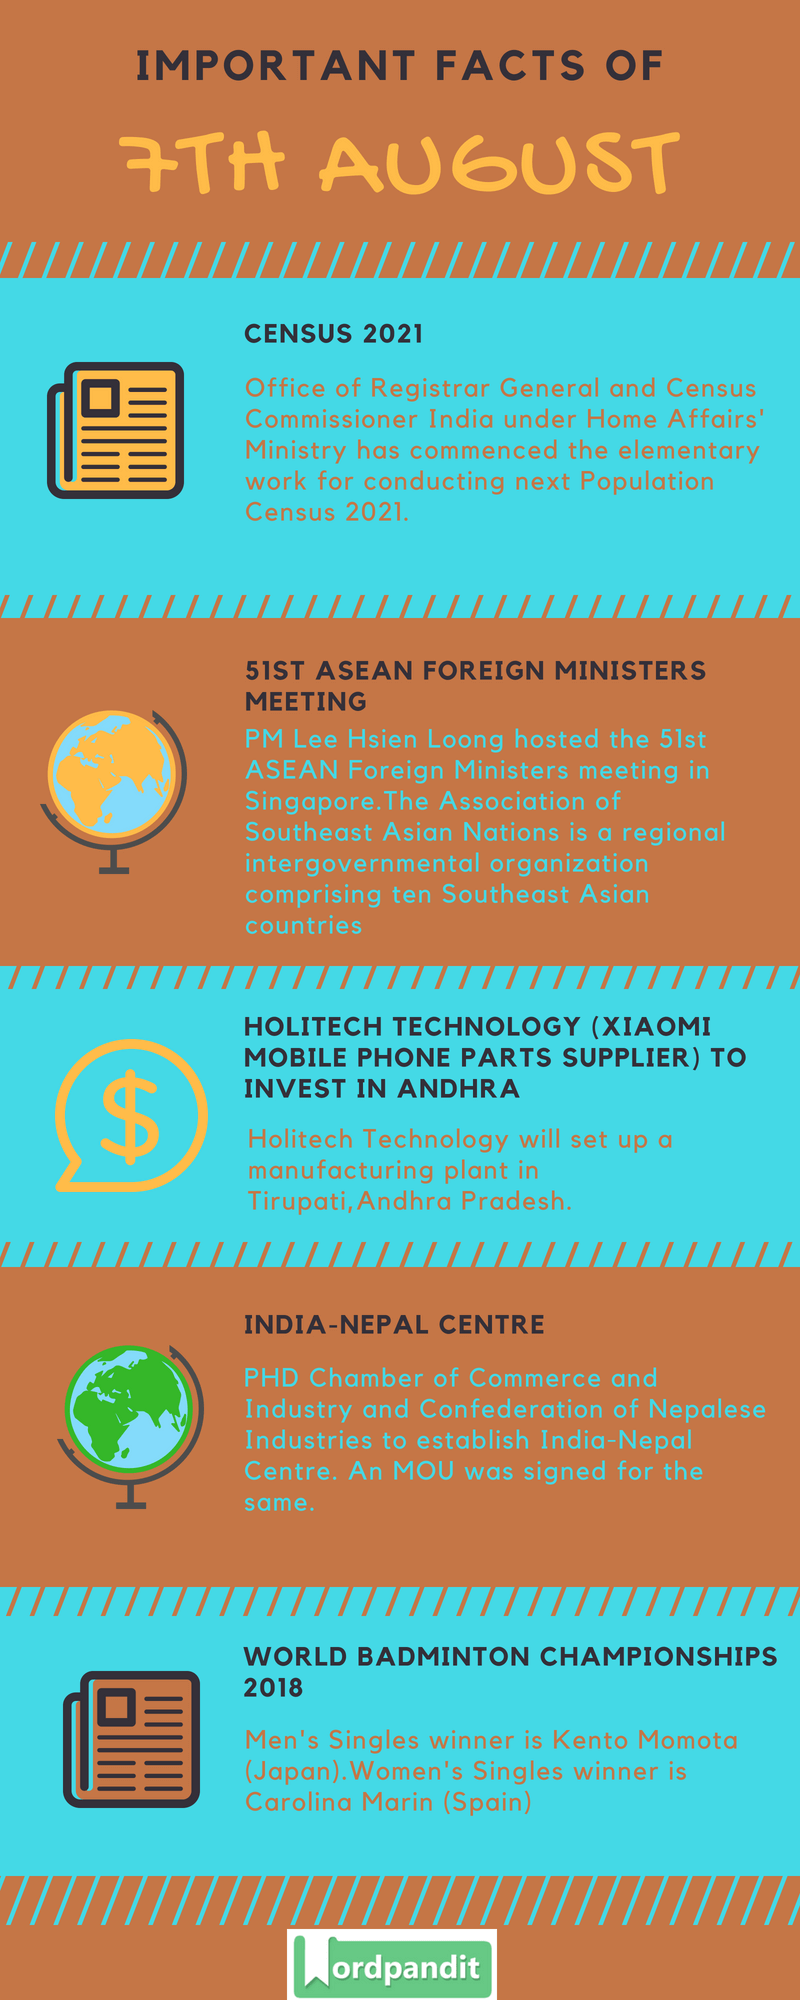 Daily Current Affairs 7 August 2018 Current Affairs Quiz August 7 2018 Current Affairs Infographic